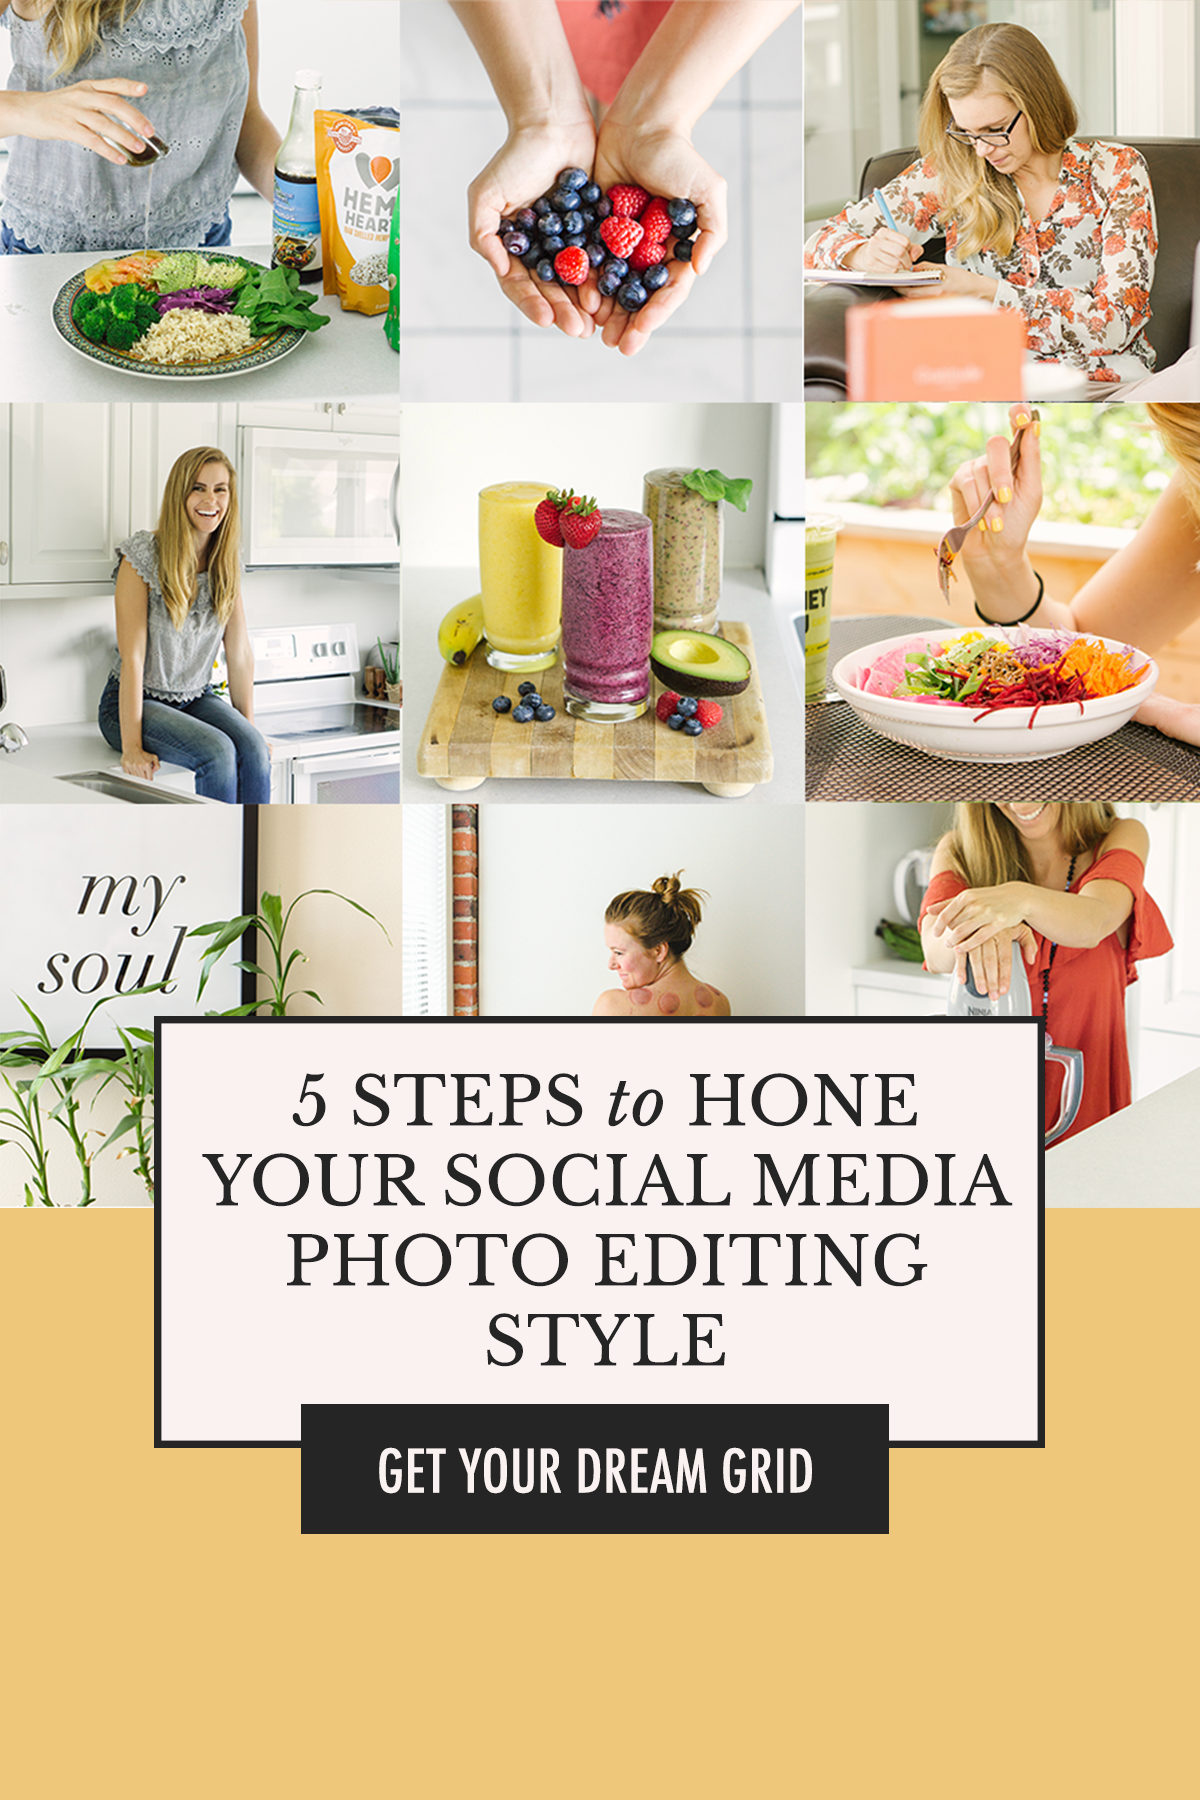 Develop your brand aesthetic for social media and plan your Instagram grid like a pro! | 5 Steps to Hone Your Social Media Photo Editing Style with Alexis The Greek